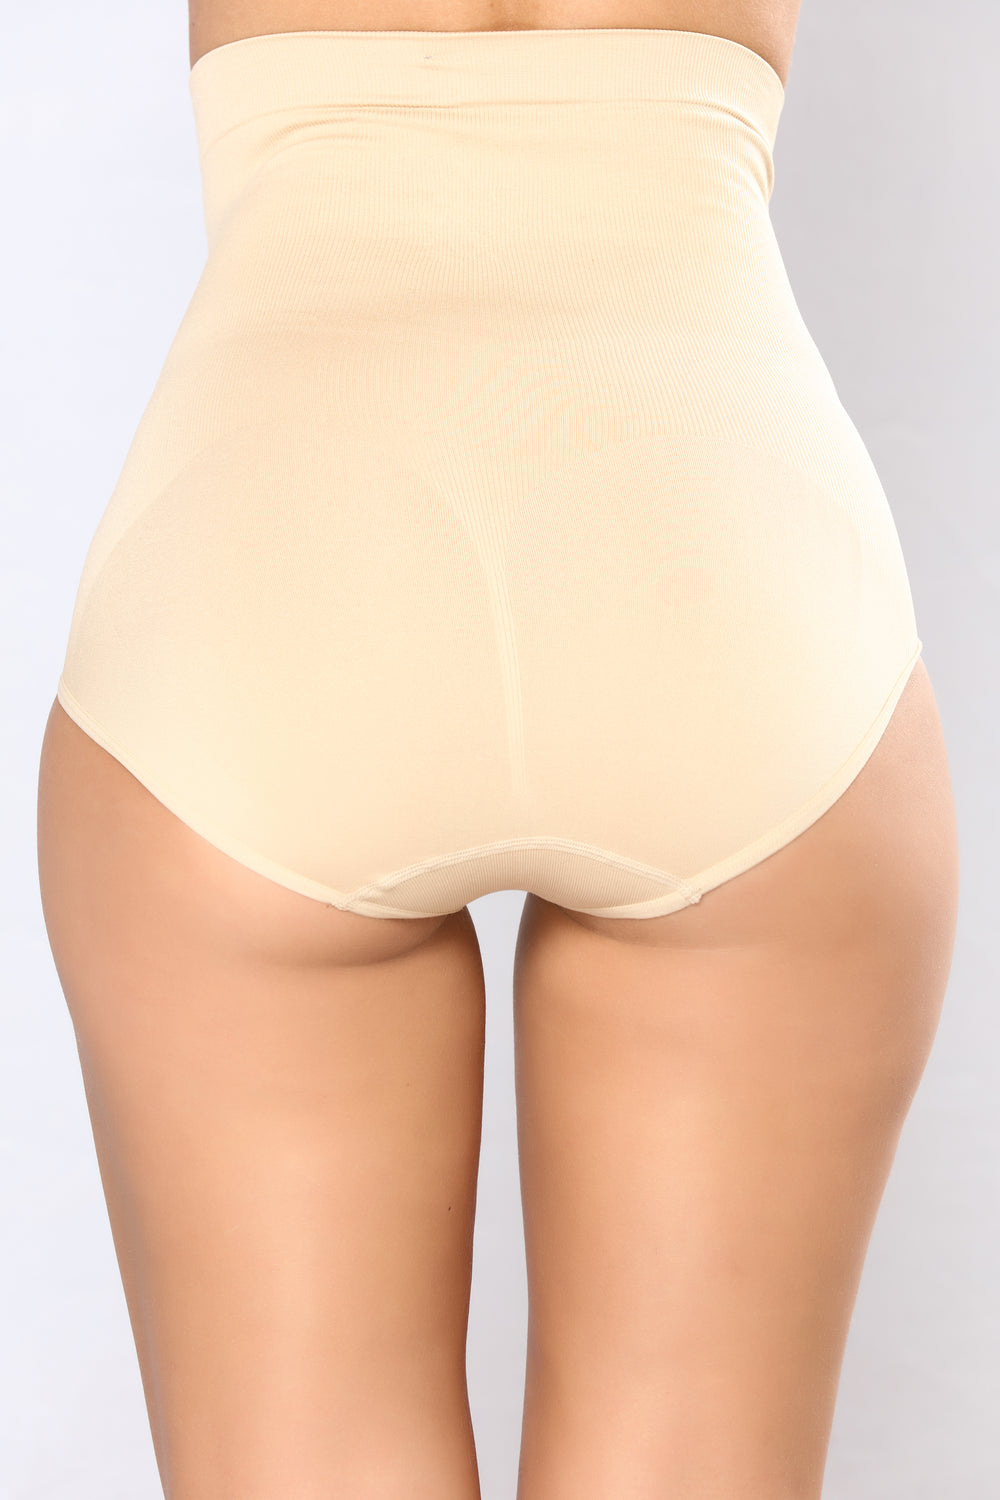 Check Out The View Panty Shapewear - Nude